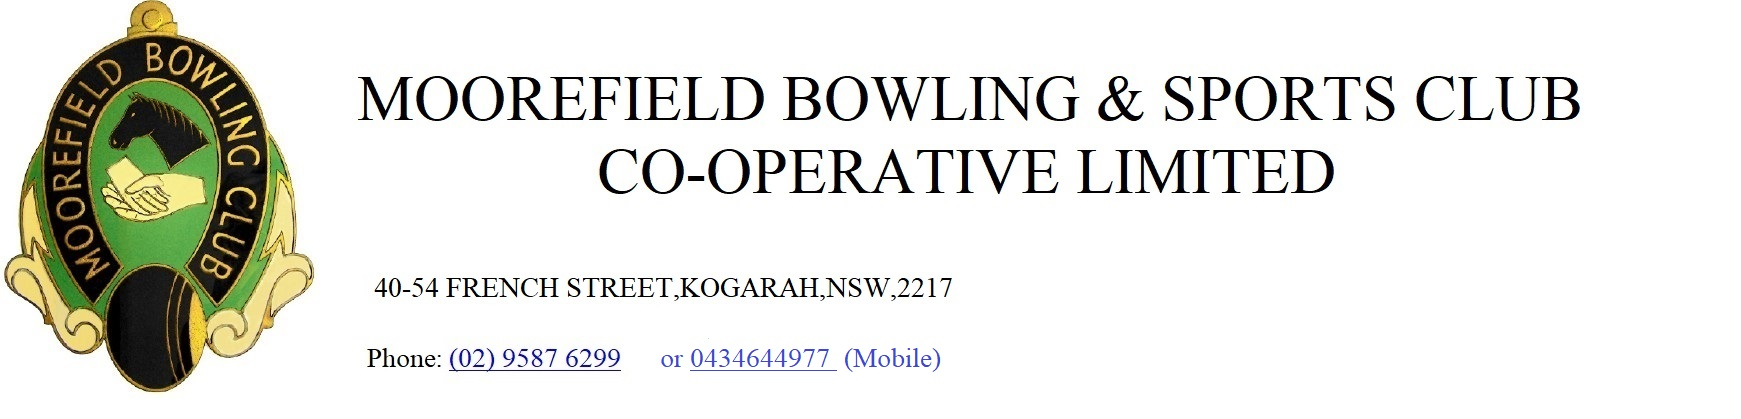 Moorefield Bowling and Sports Club Co-op